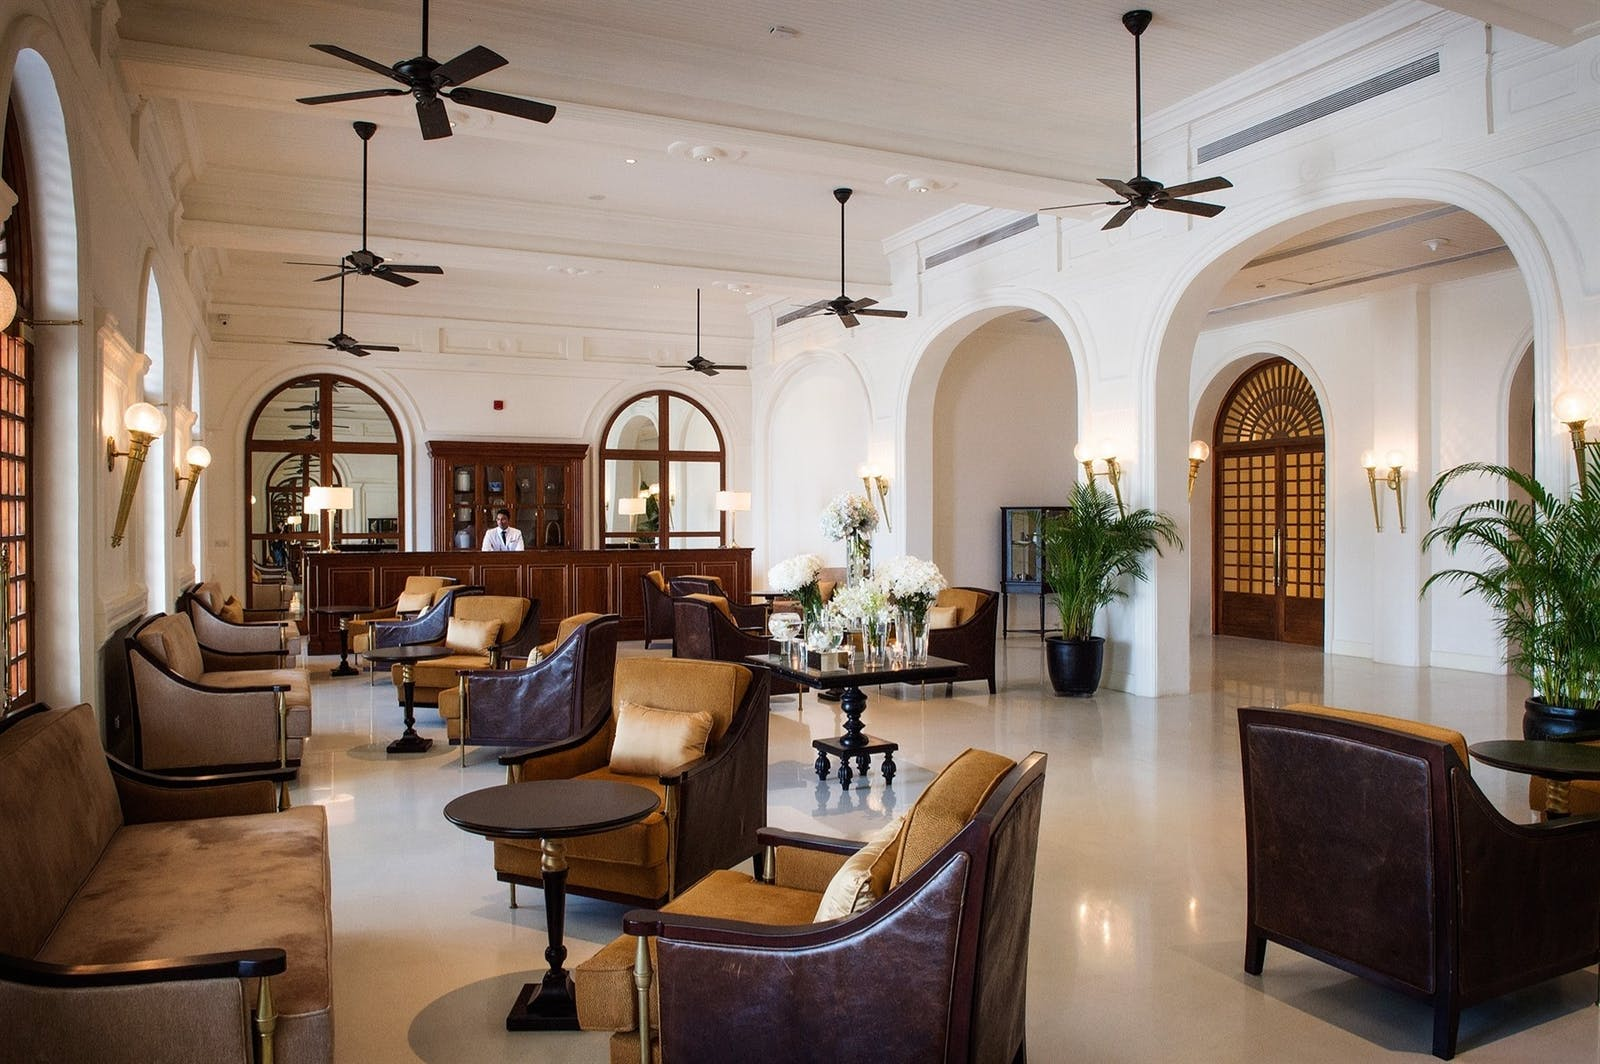 Palm Lounge, Galle Face Hotel, Colombo, Sri Lanka